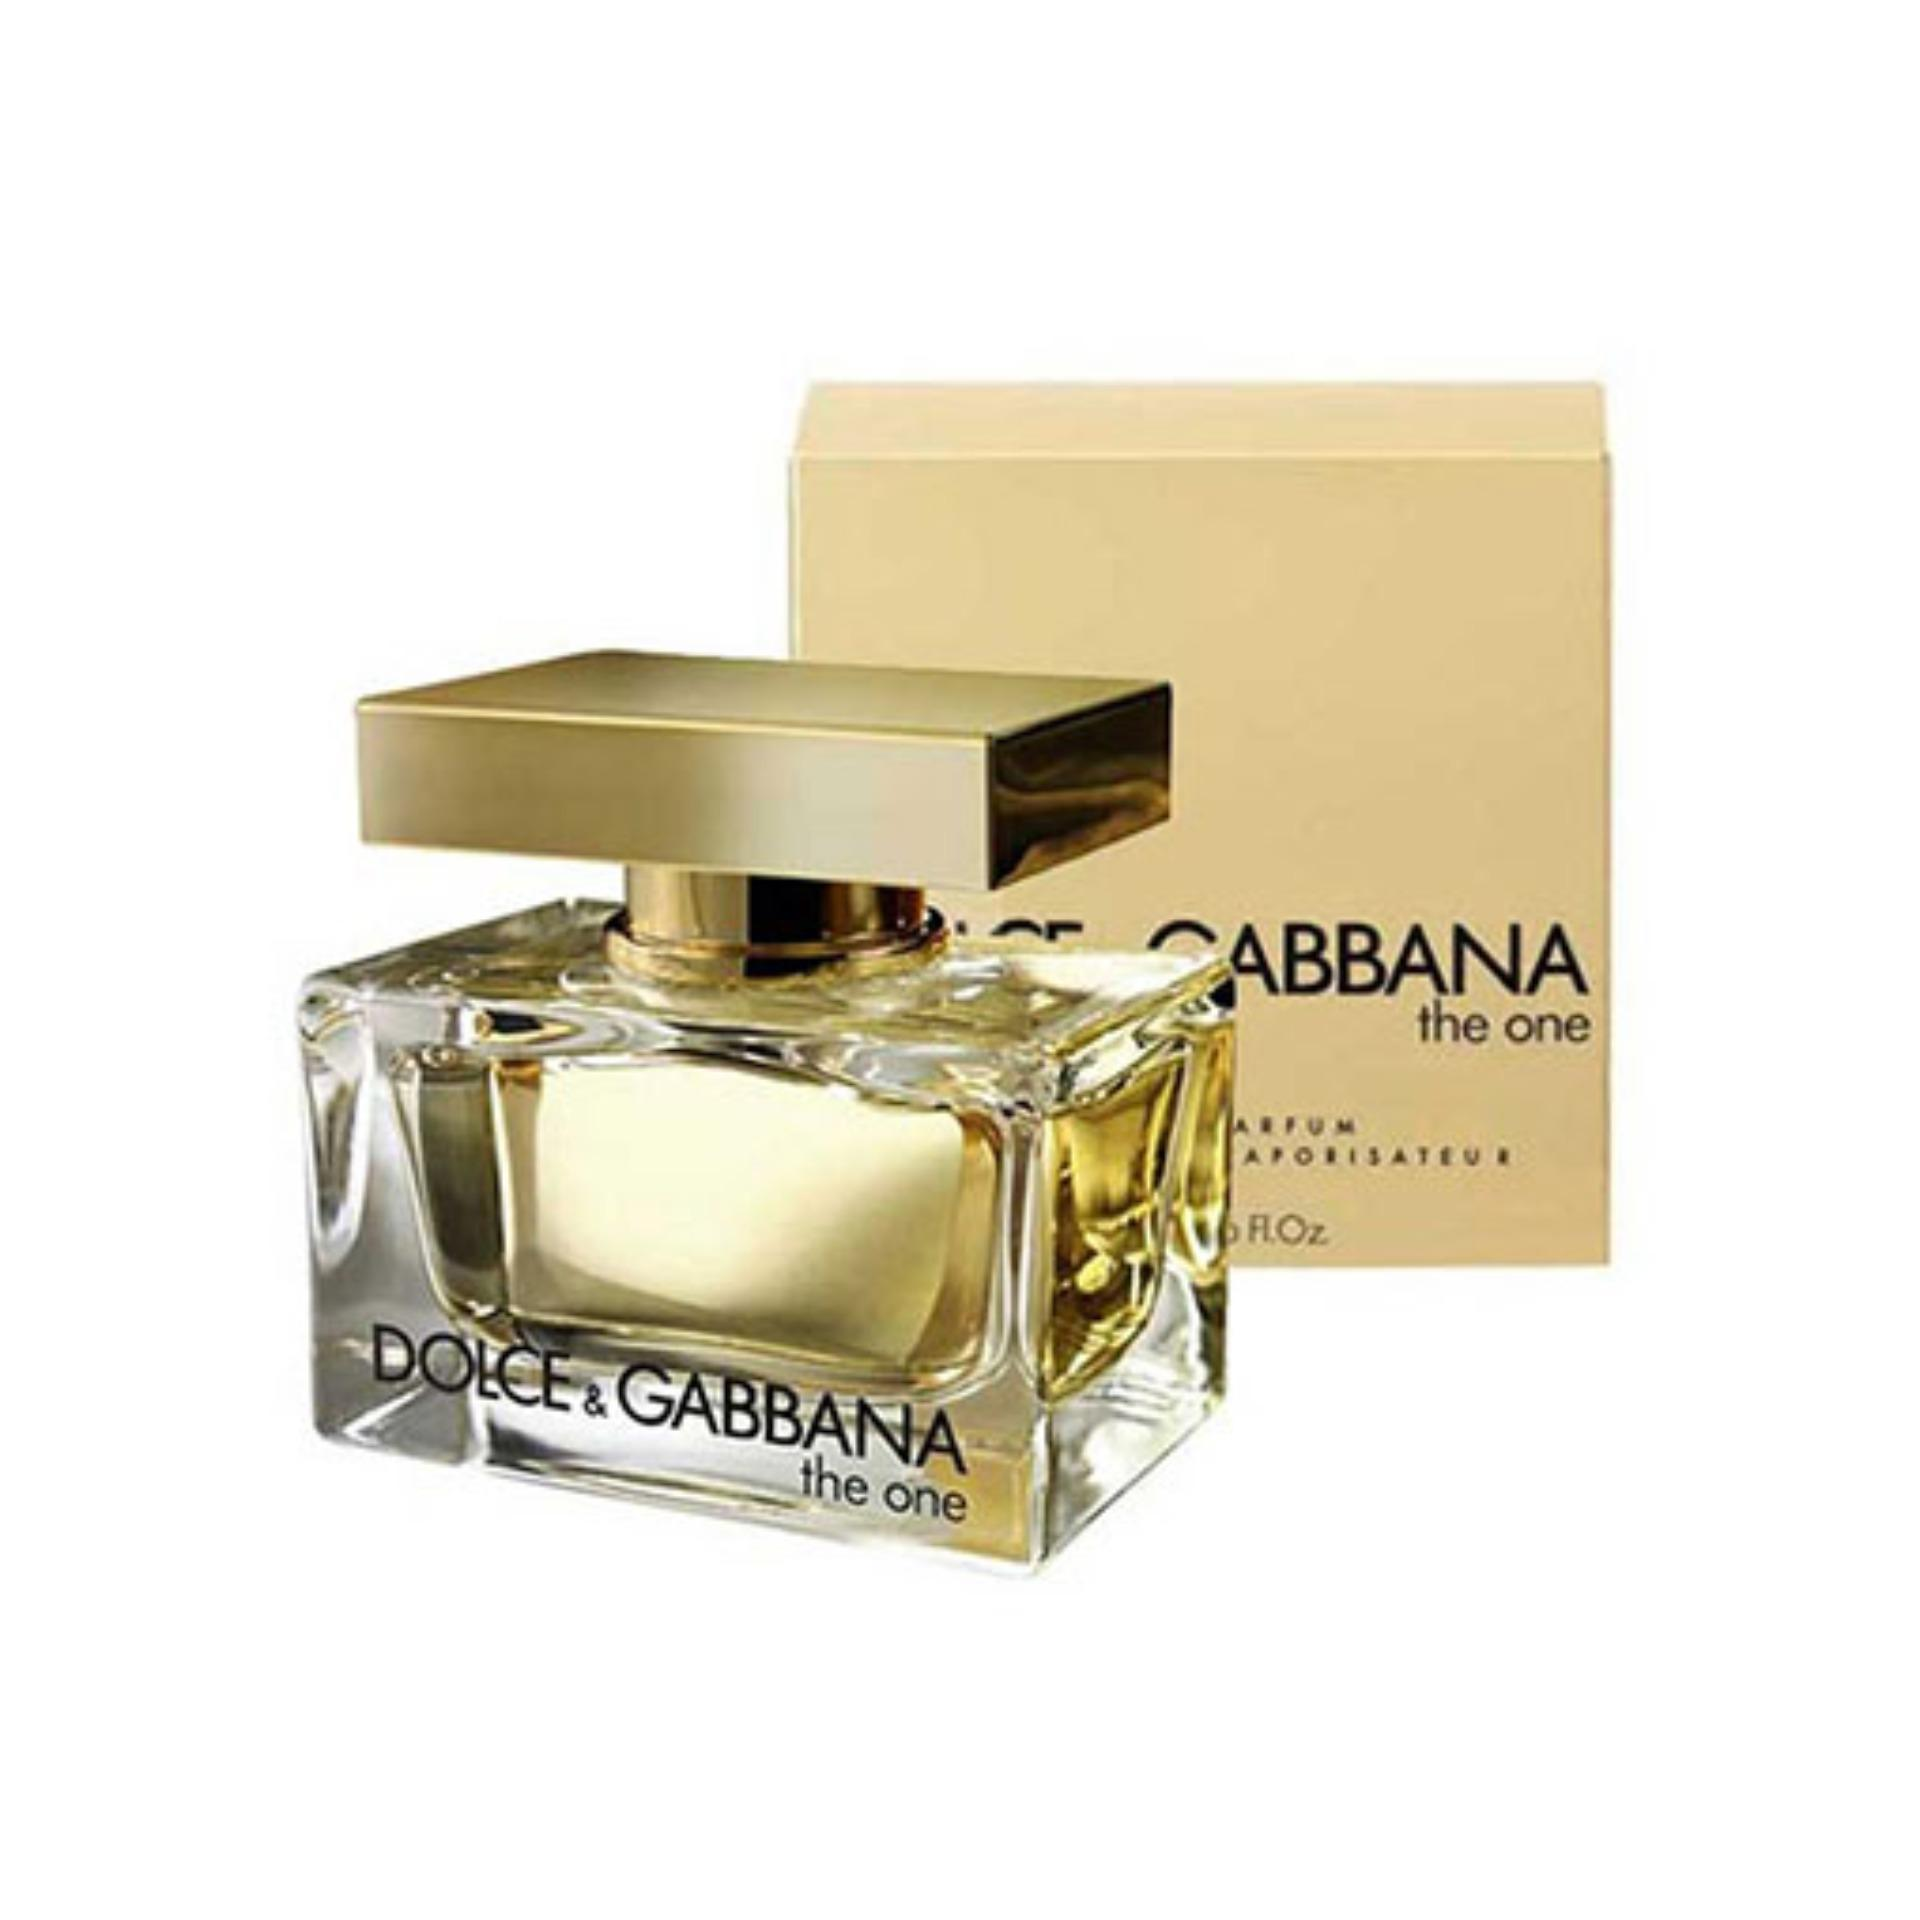 Dolce and Gabbana Philippines - Dolce and Gabbana Fragrances for ... ea8540f911